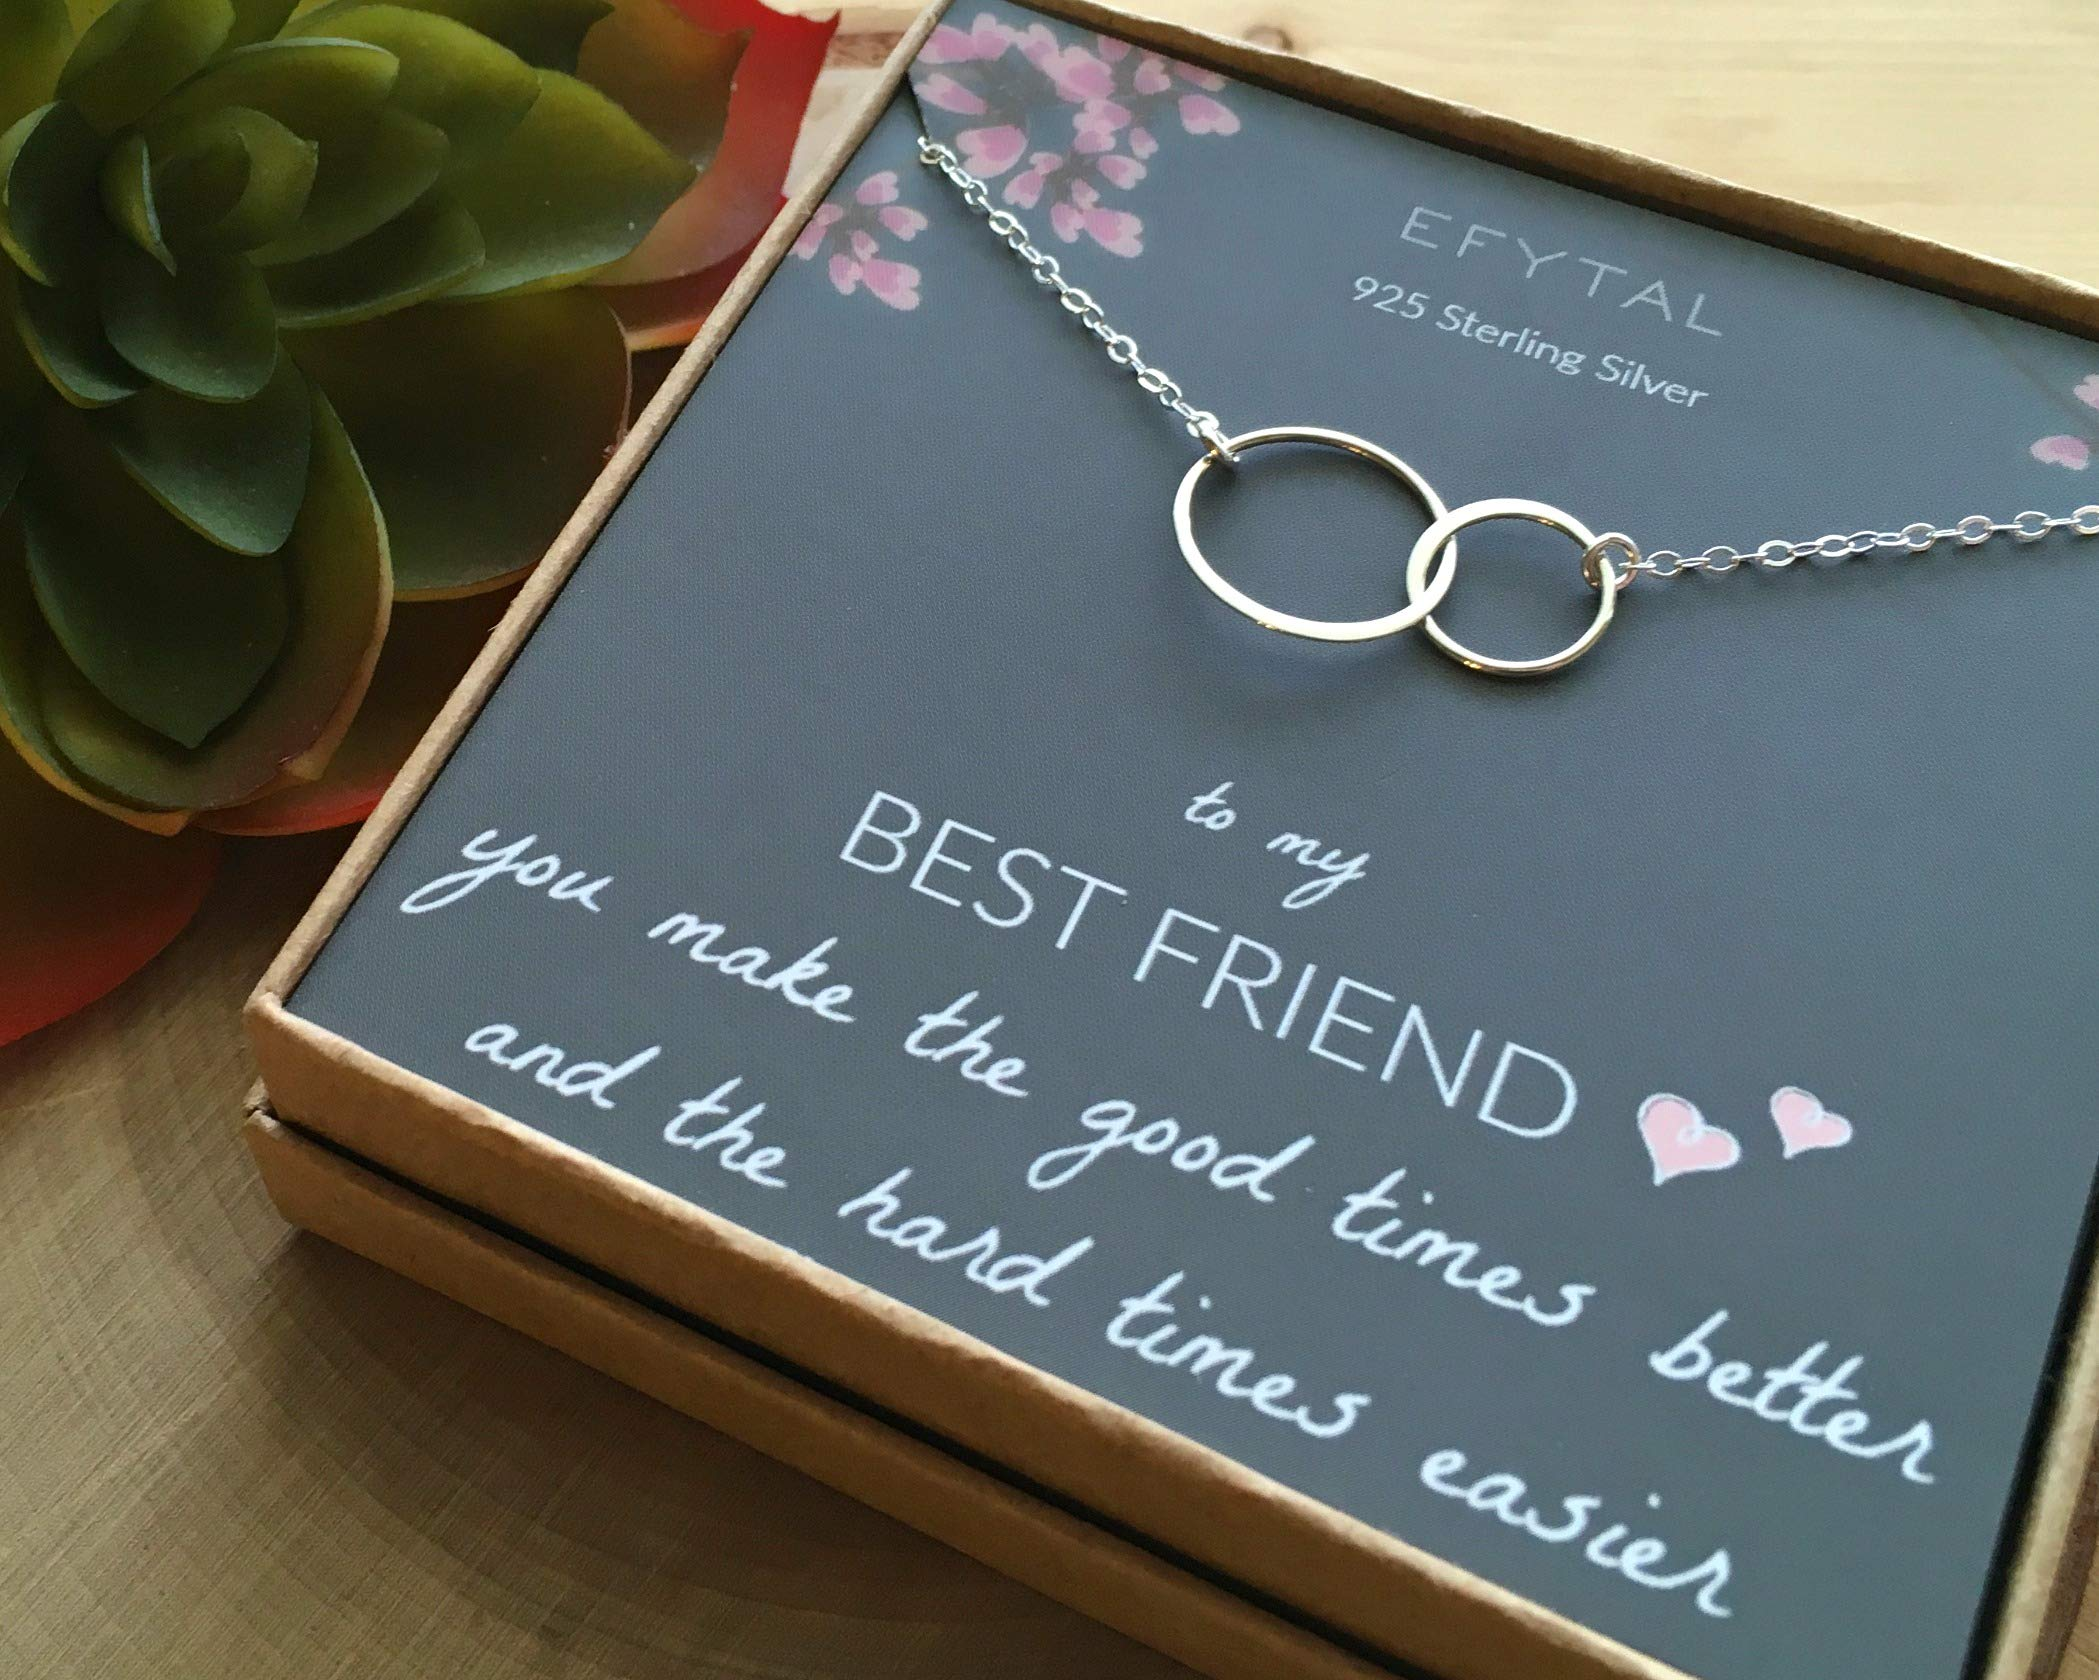 EFYTAL Best Friend Gifts, Sterling Silver Interlocking Infinity Circles Friendship Necklace Gift for Friends BFF                             by EFYTAL (Image #6)